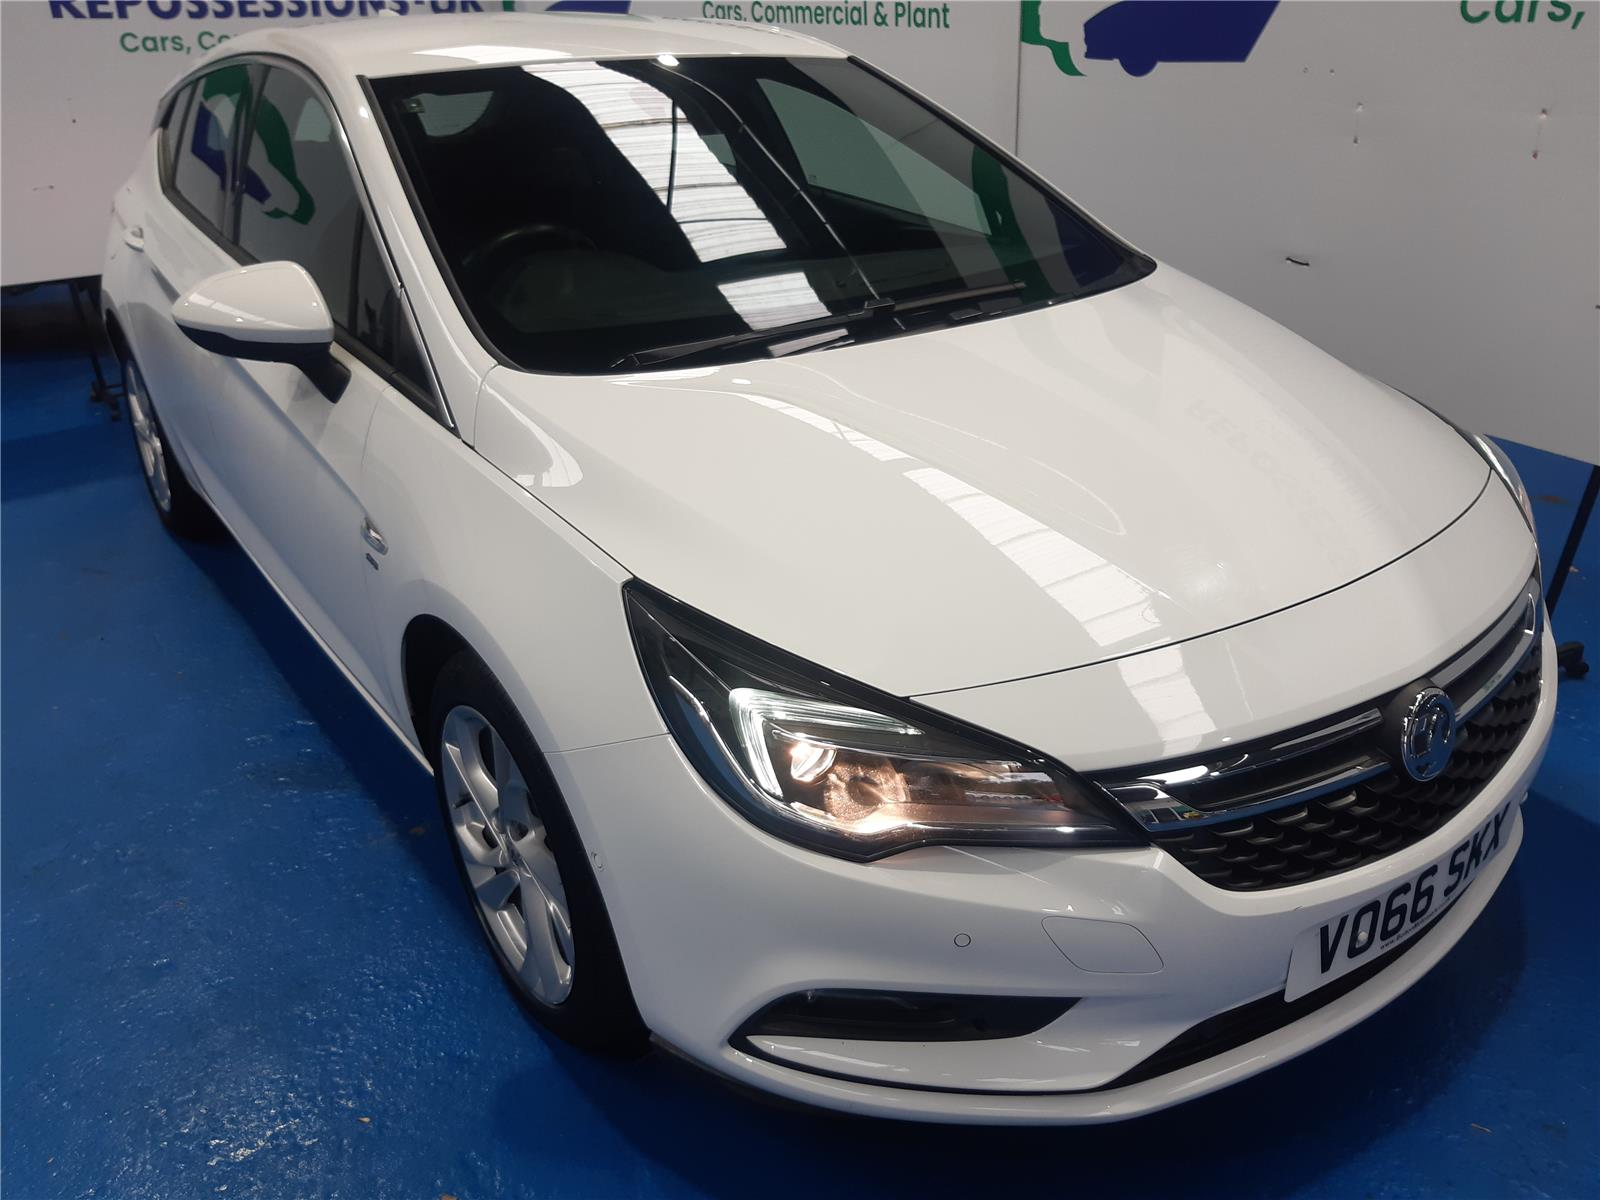 2016 VAUXHALL ASTRA SRI NAV S/S 1399 PETROL AUTOMATIC 6 Speed 5 DOOR HATCHBACK